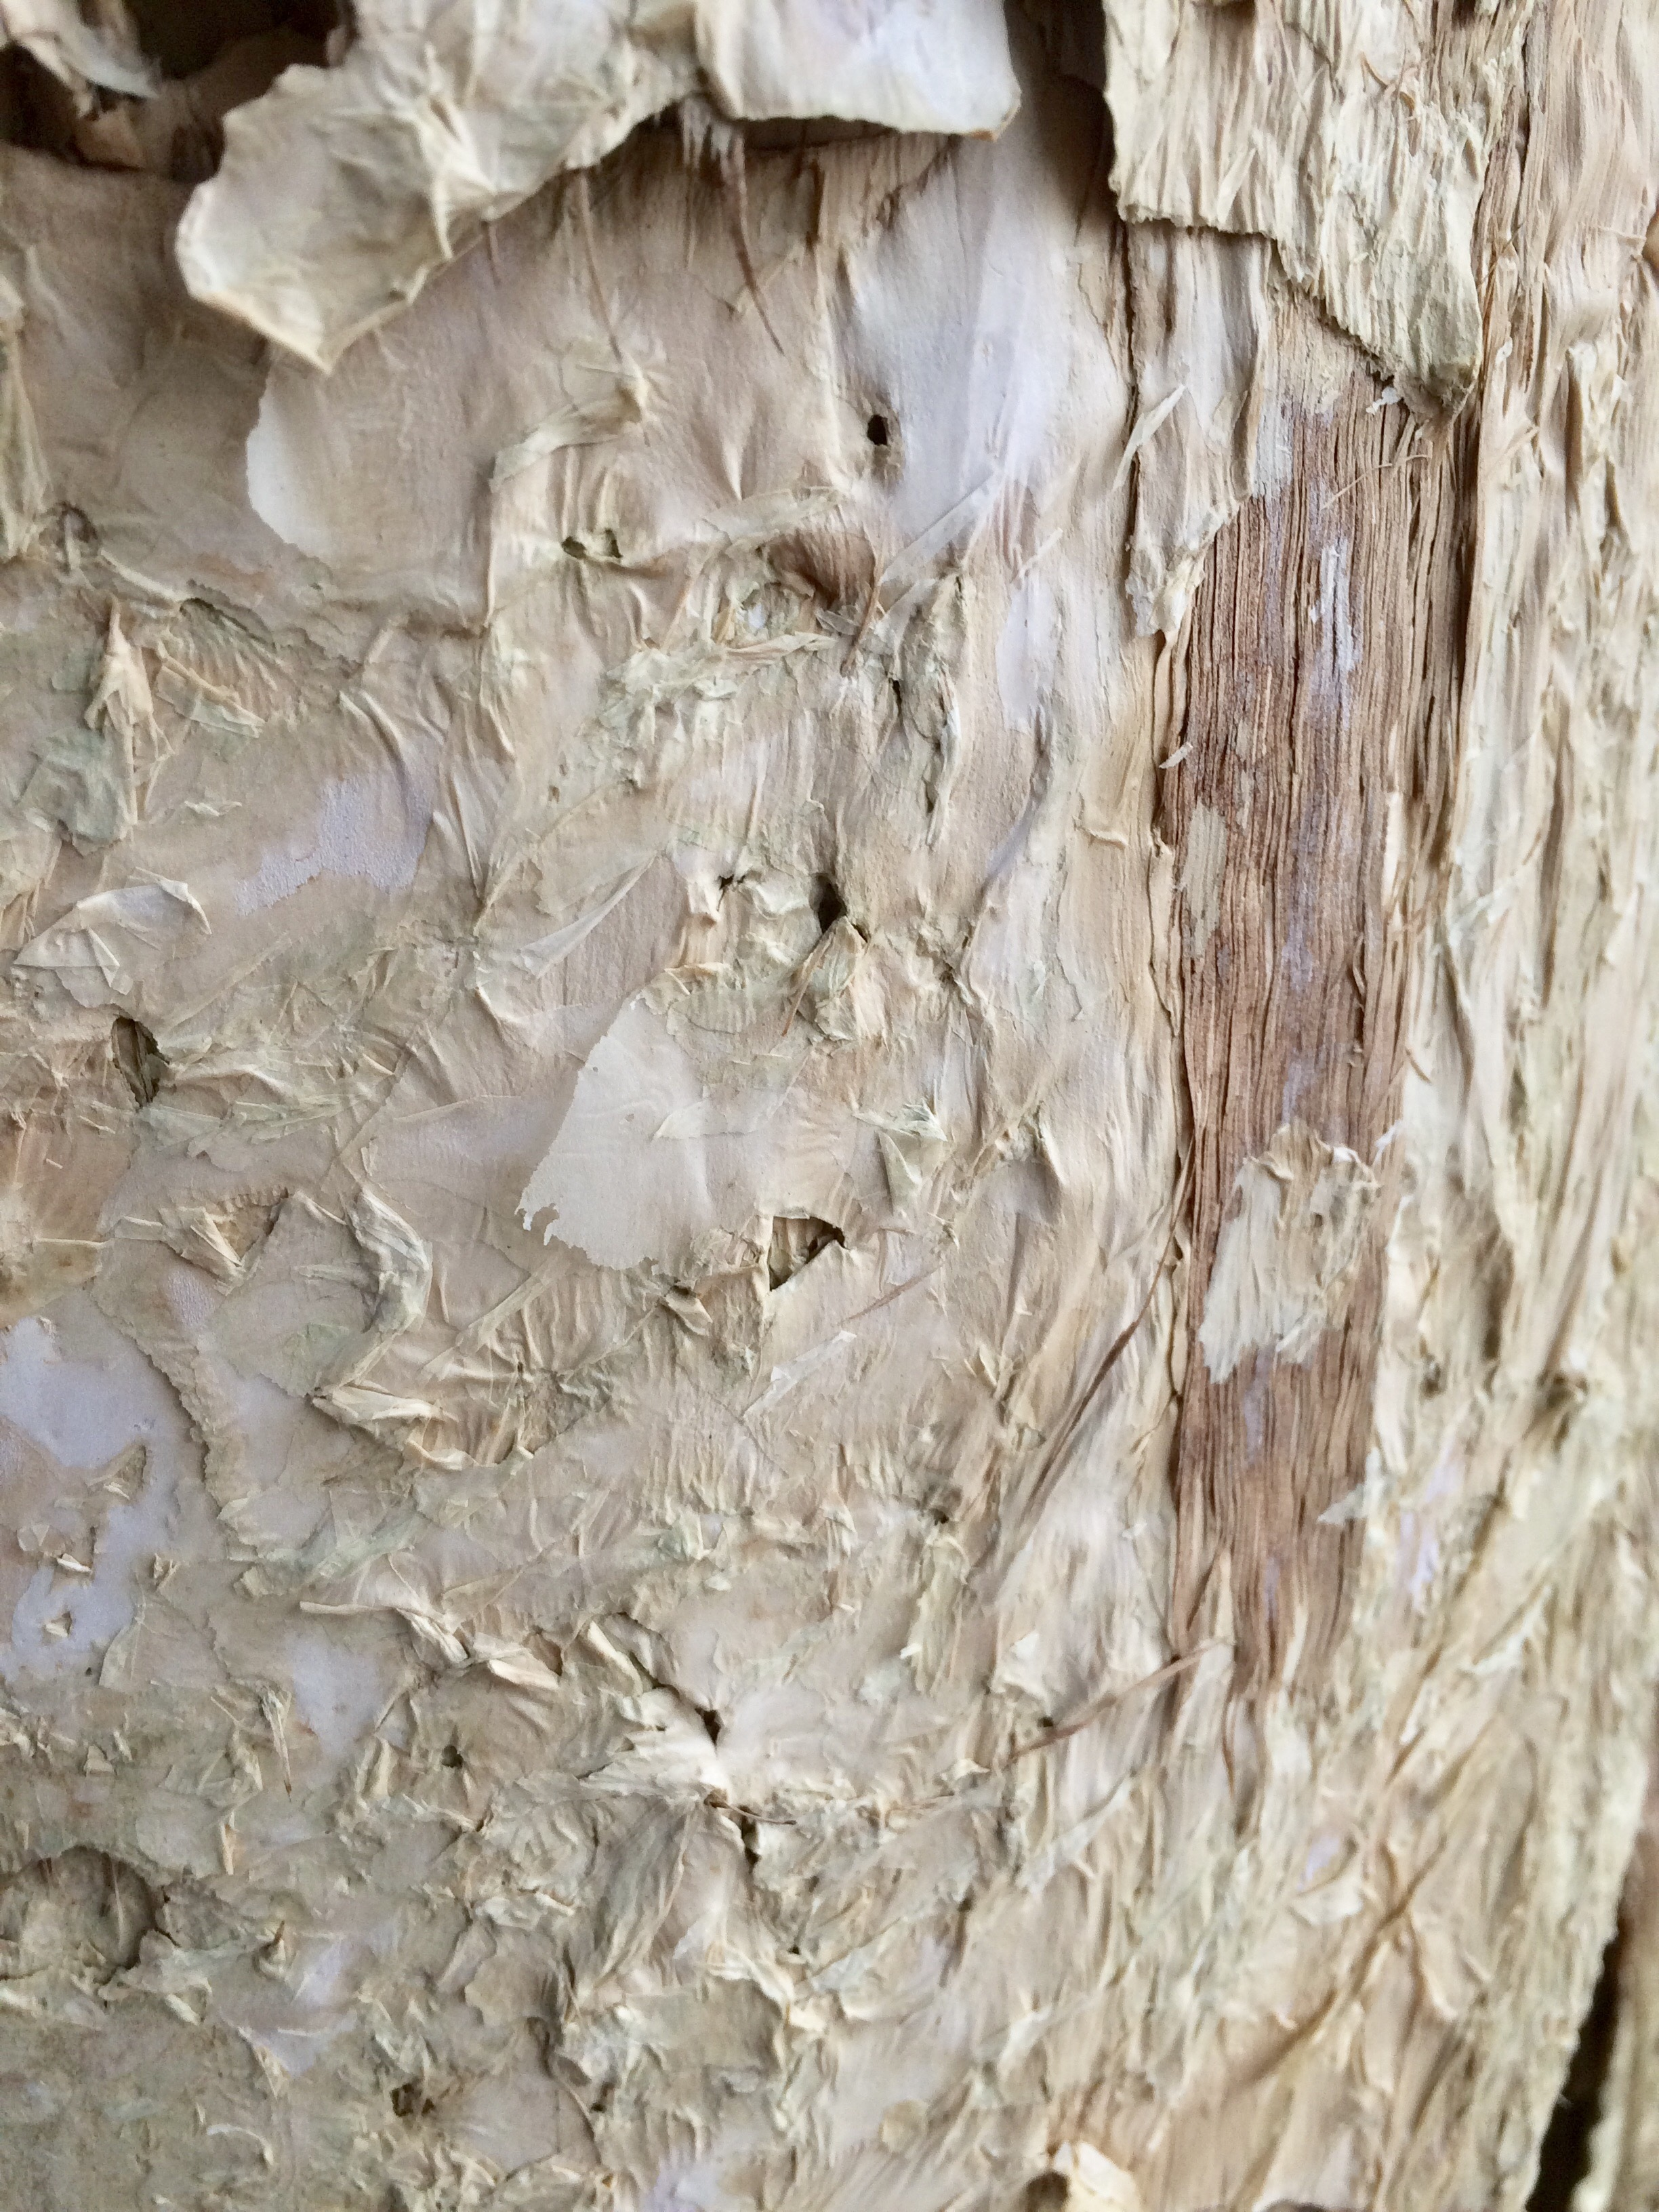 The good old paper bark is another specimen with a lovely texture